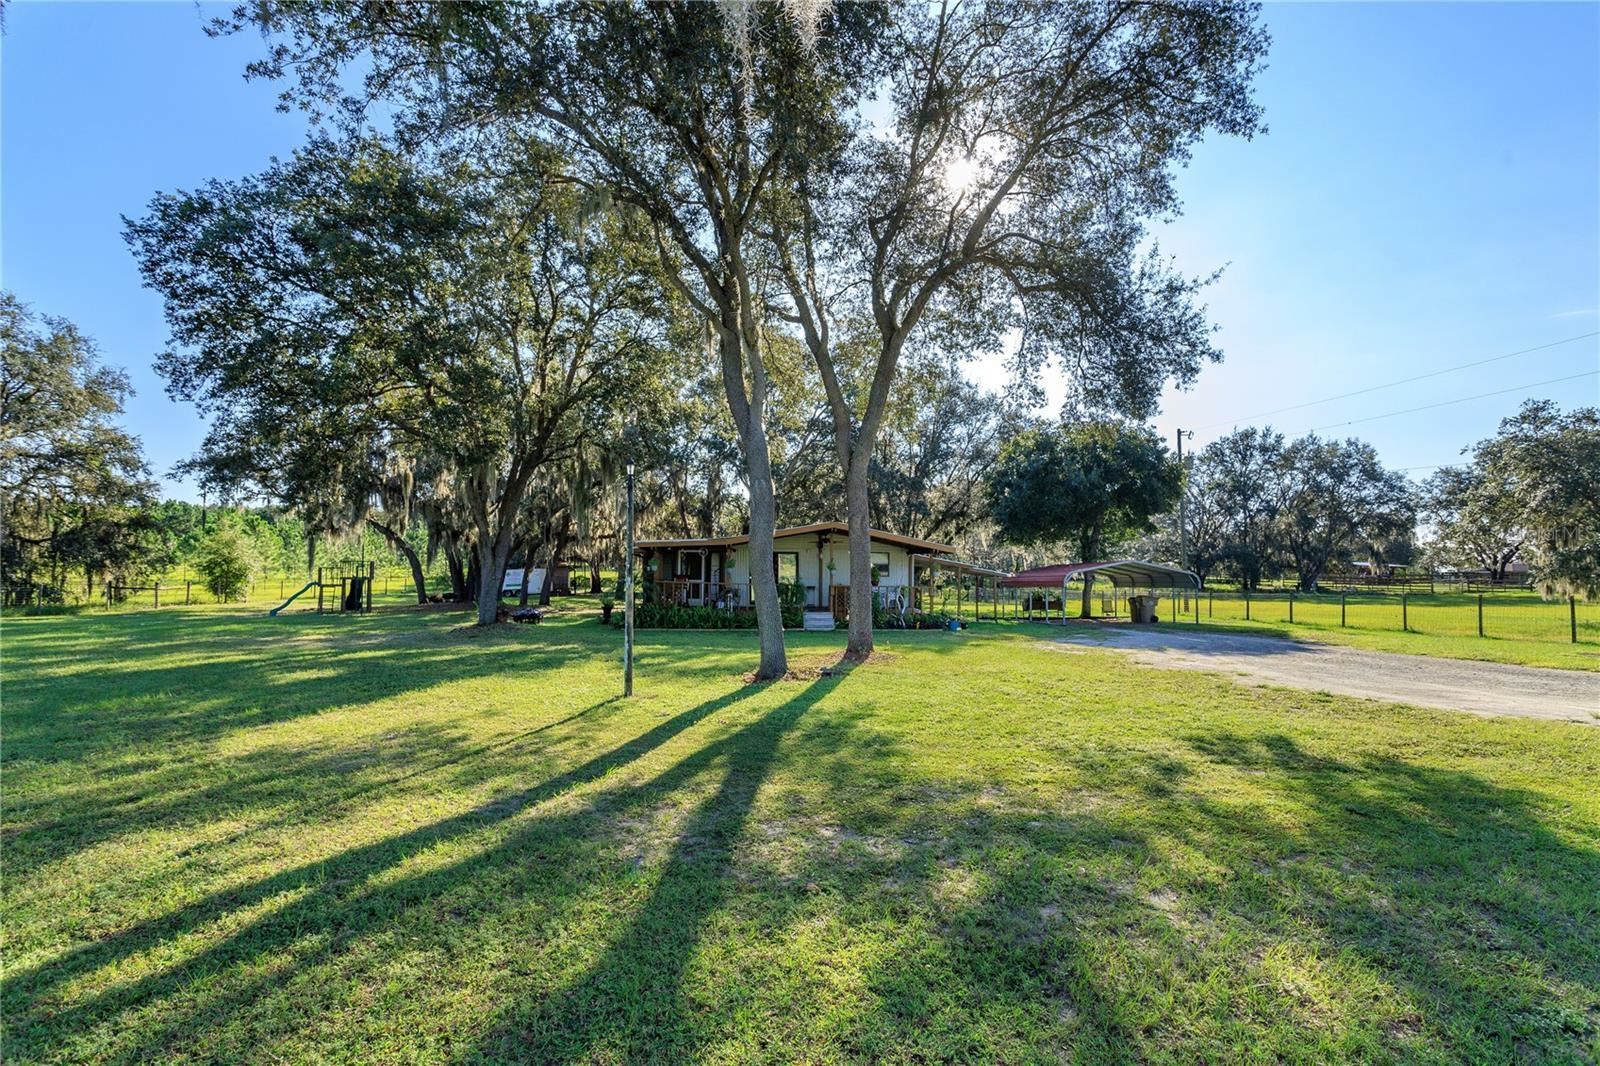 Photo of 21236 S BUCKHILL ROAD, CLERMONT, FL 34715 (MLS # O5975465)